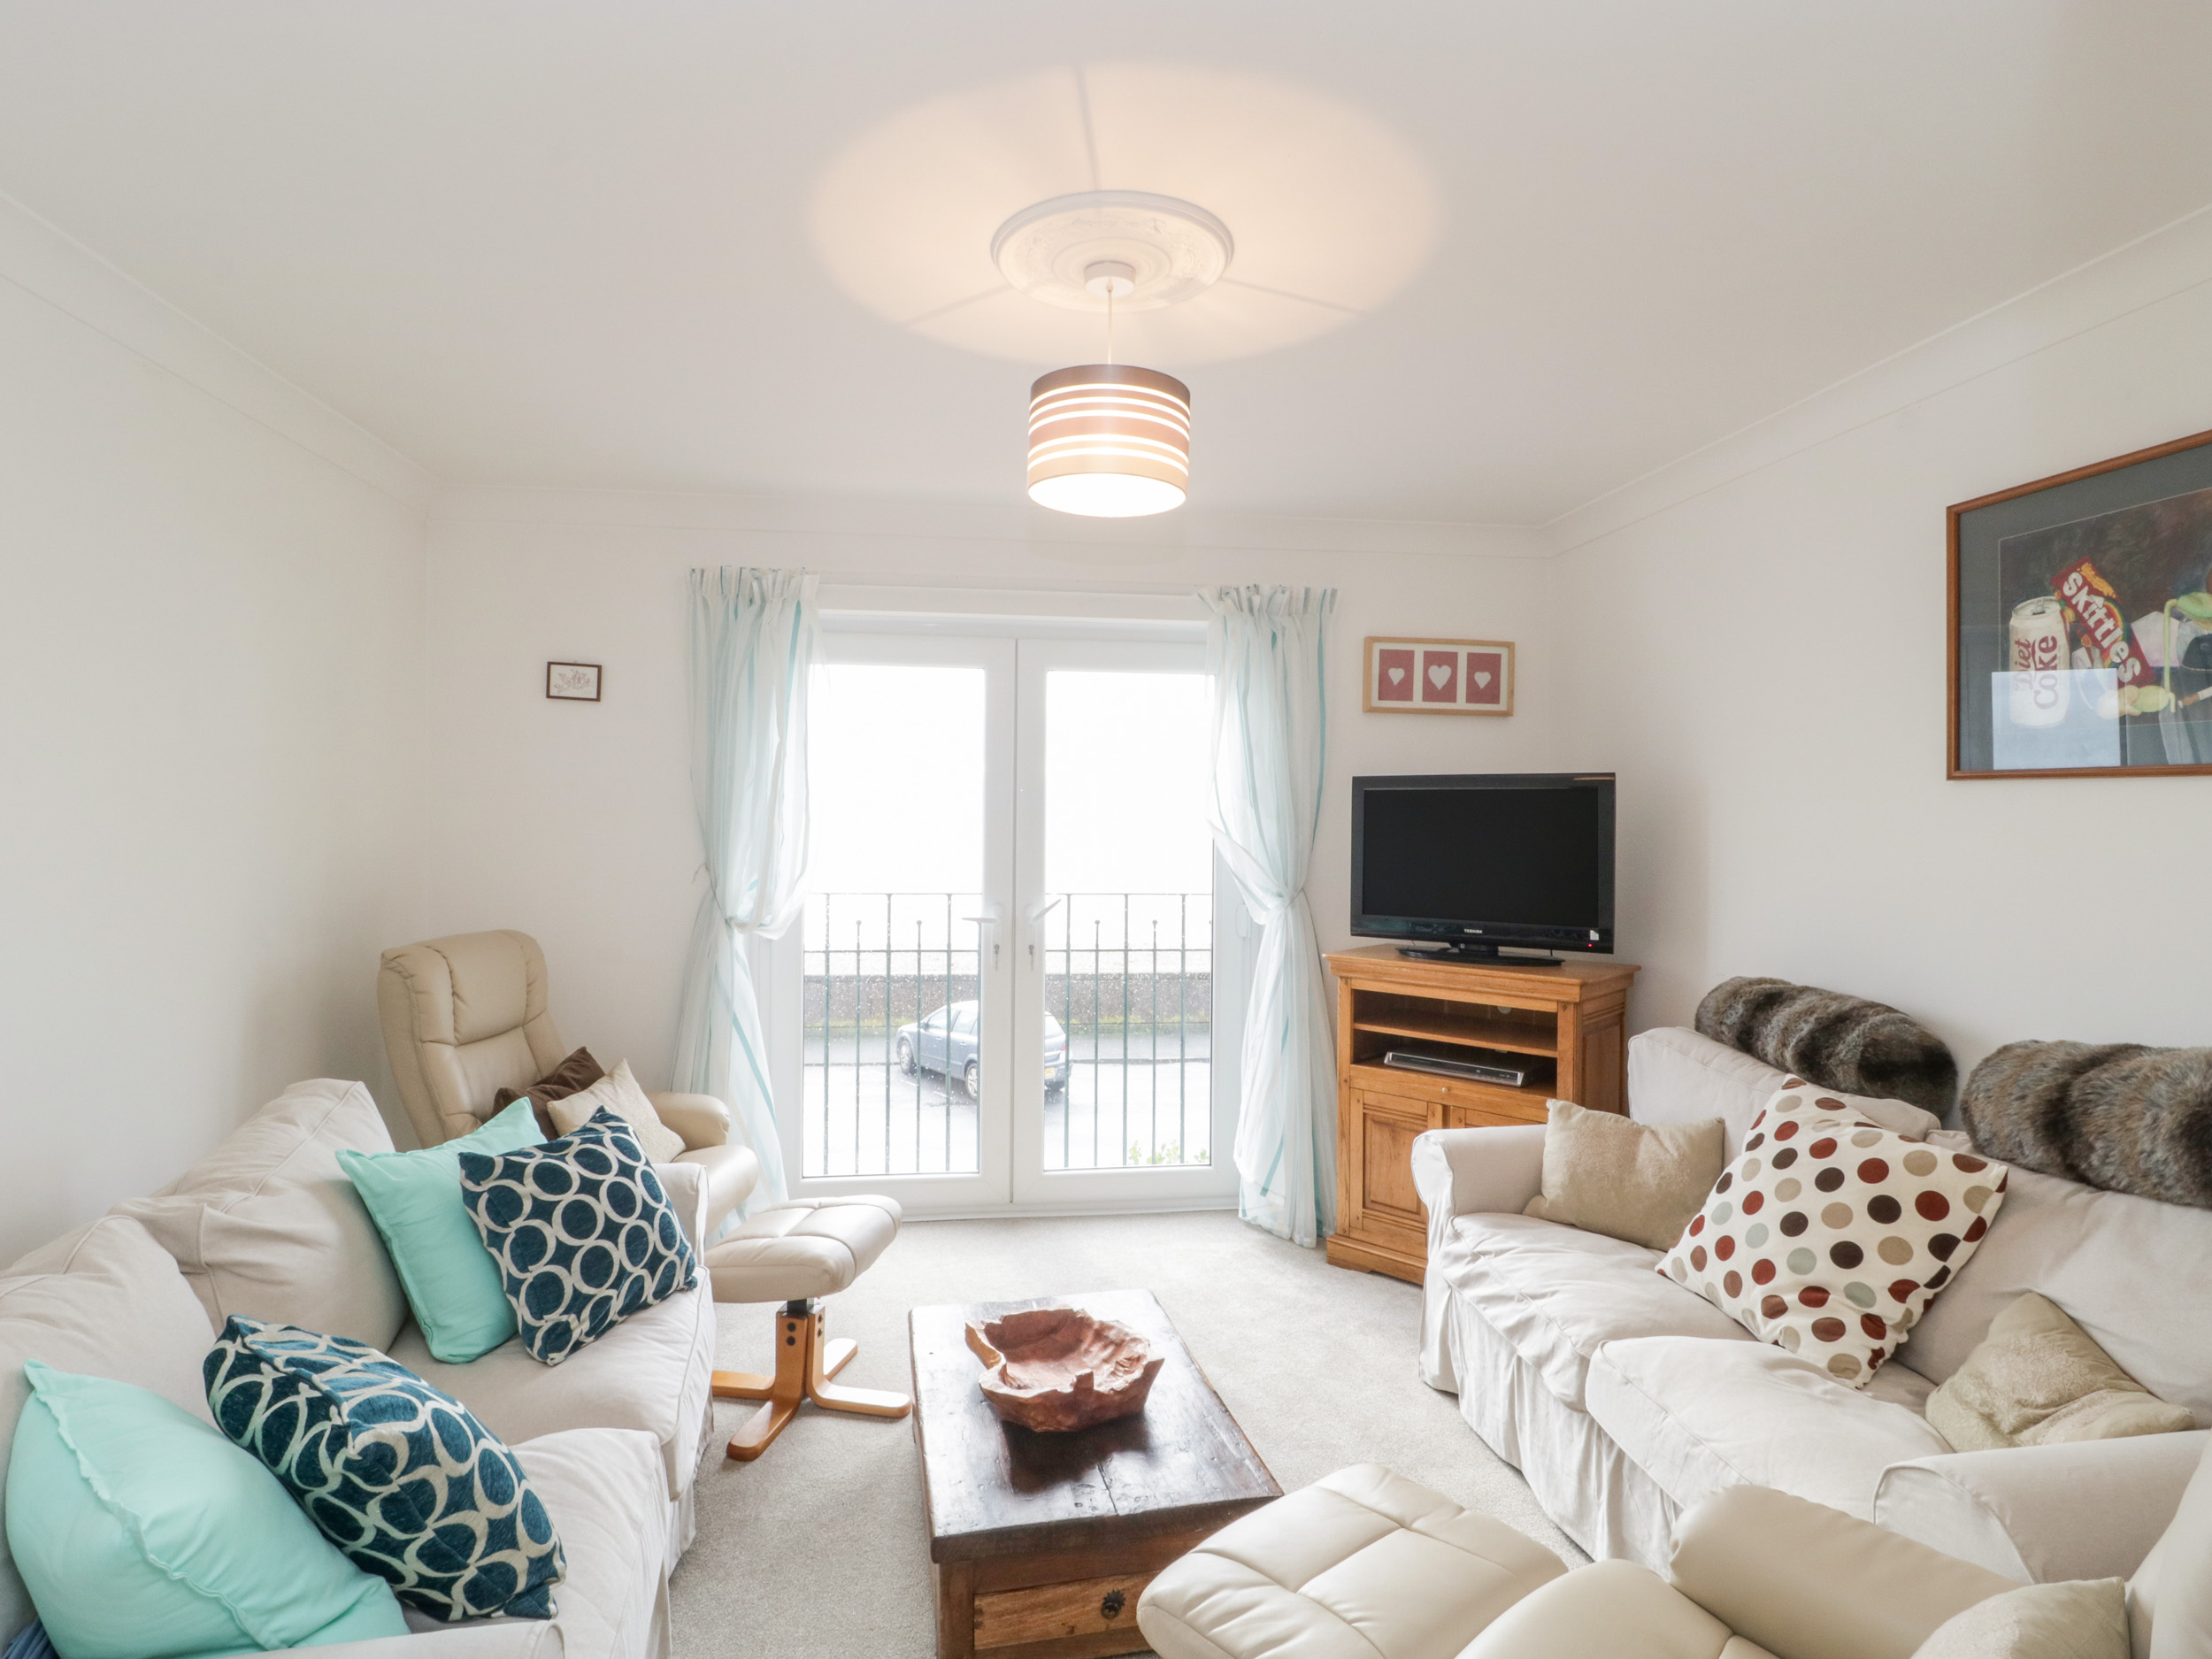 3 bedroom Cottage for rent in Seaton, Devon